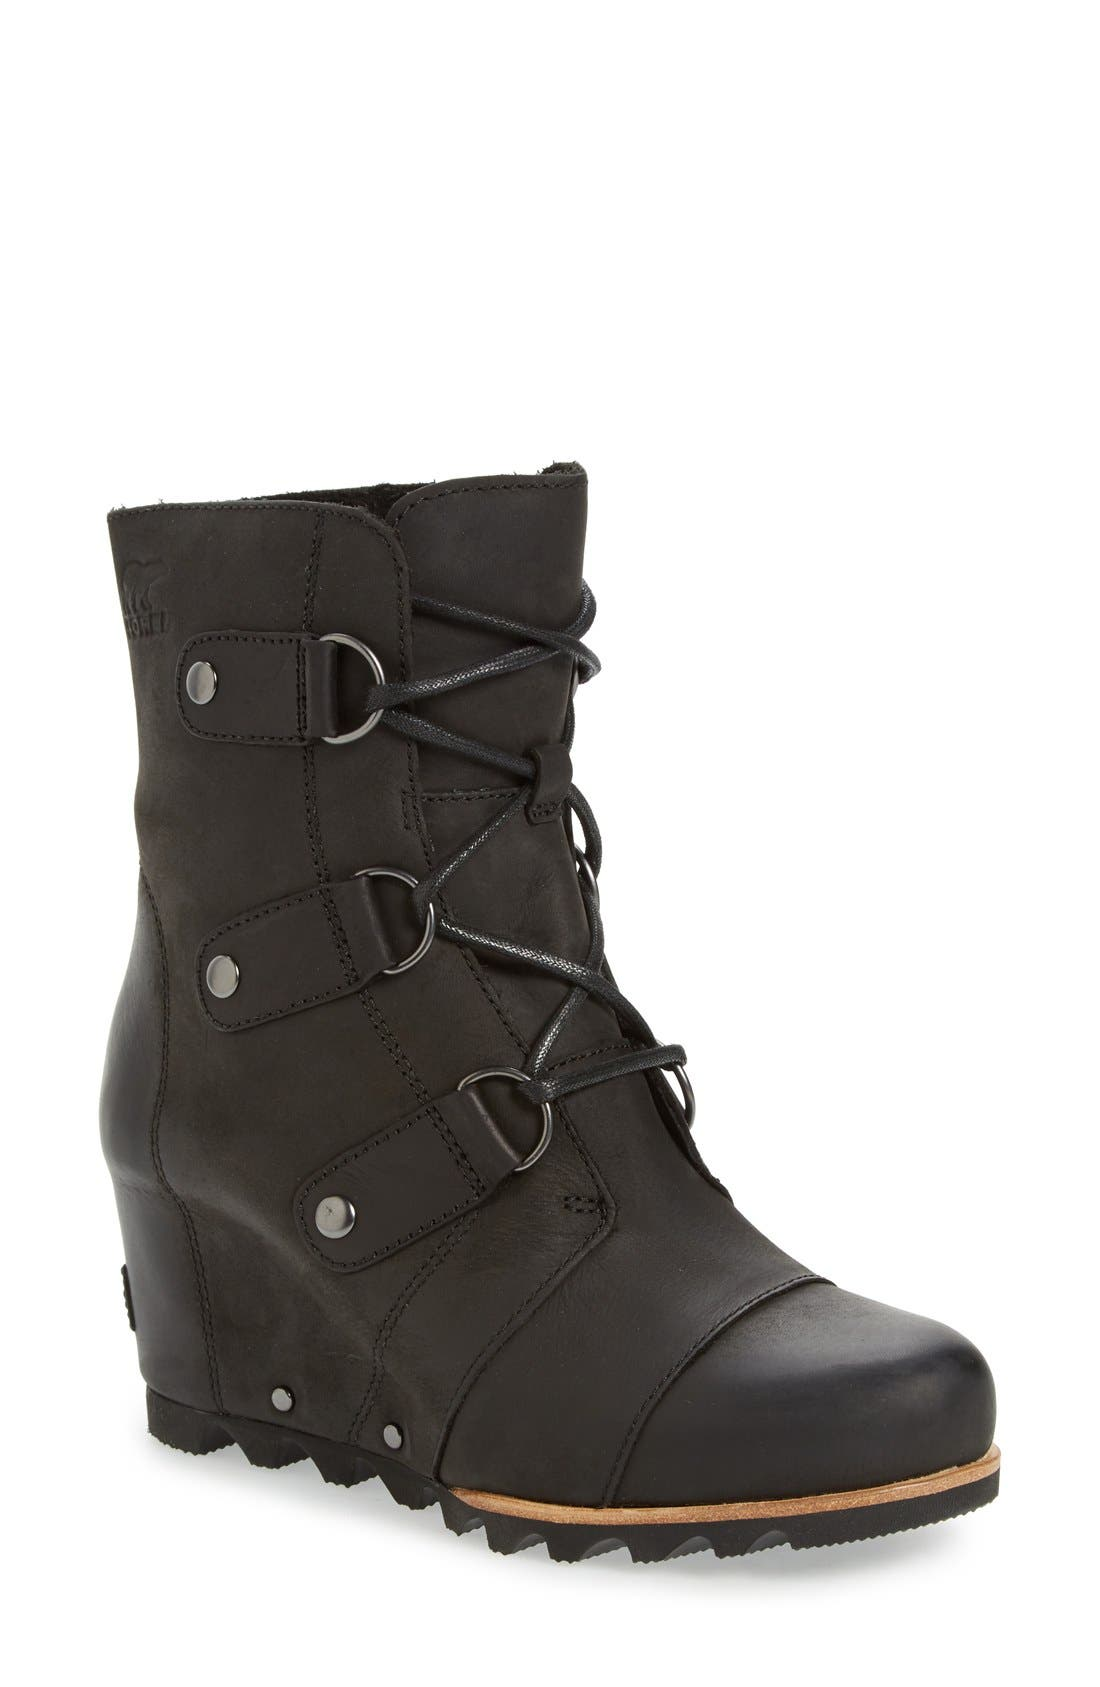 Alternate Image 1 Selected - SOREL 'Joan of Arctic' Waterproof Wedge Boot (Women)